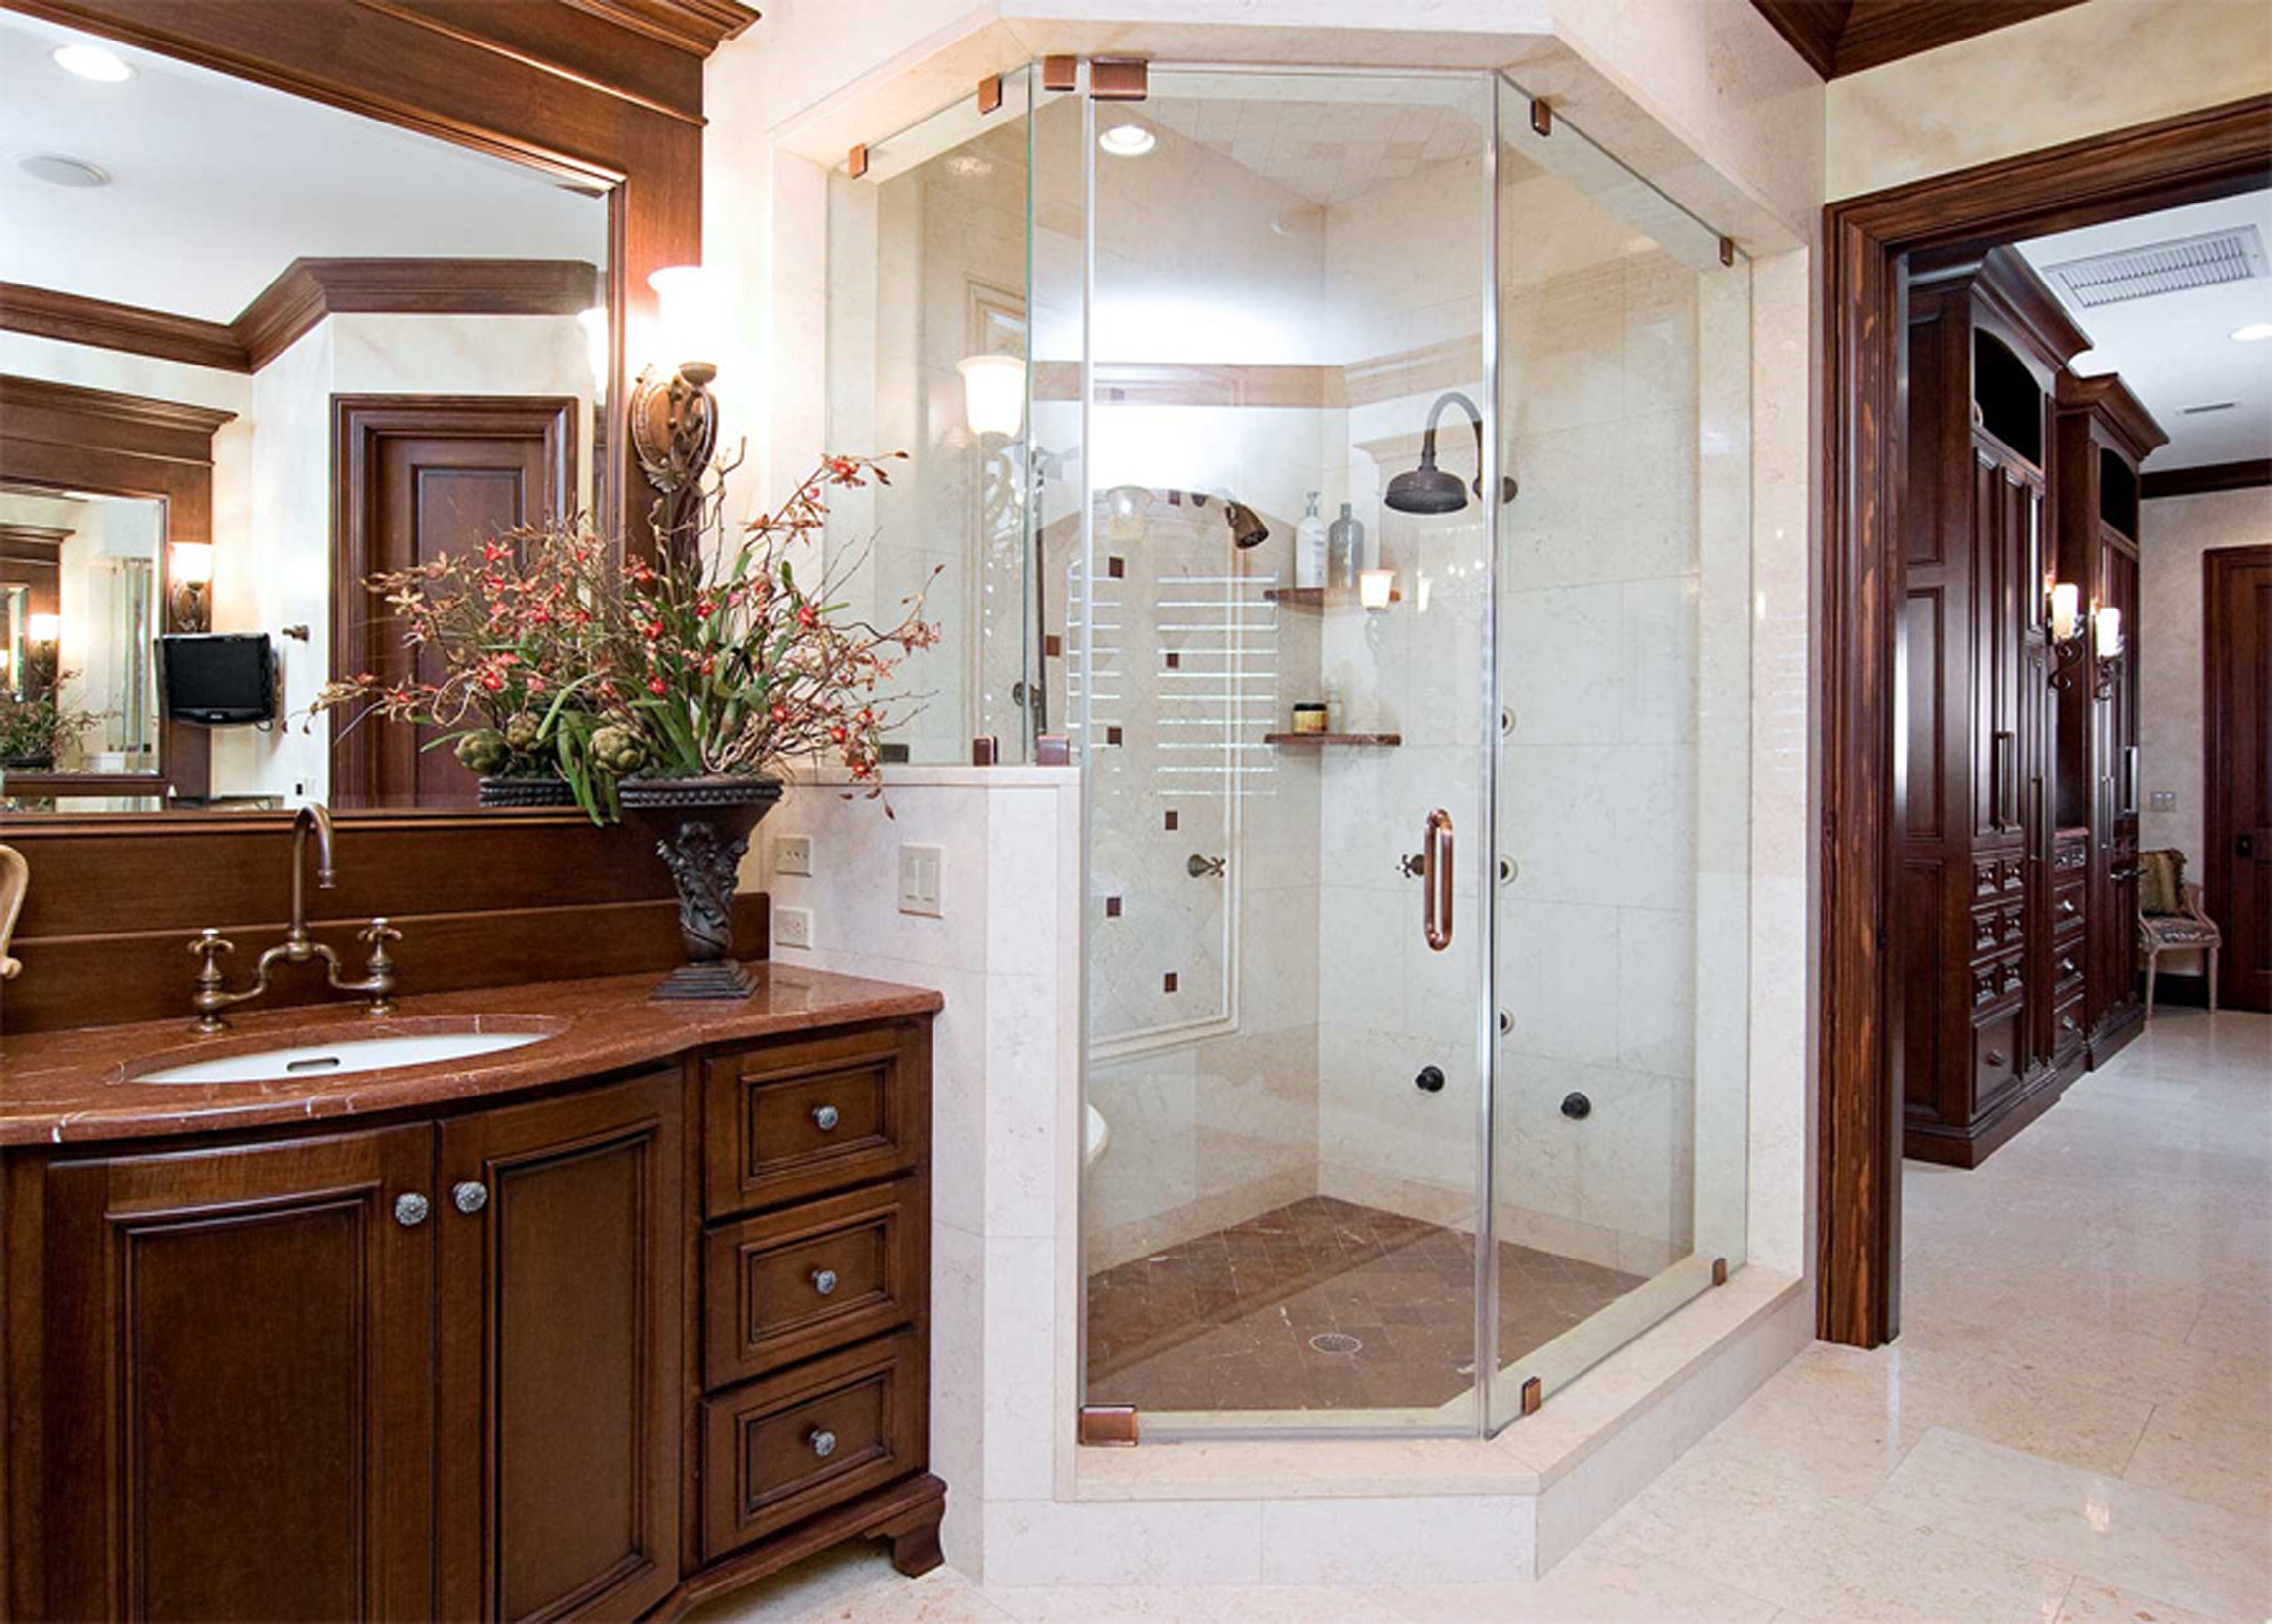 Luxurious Bathroom Plan (Image 4 of 123)